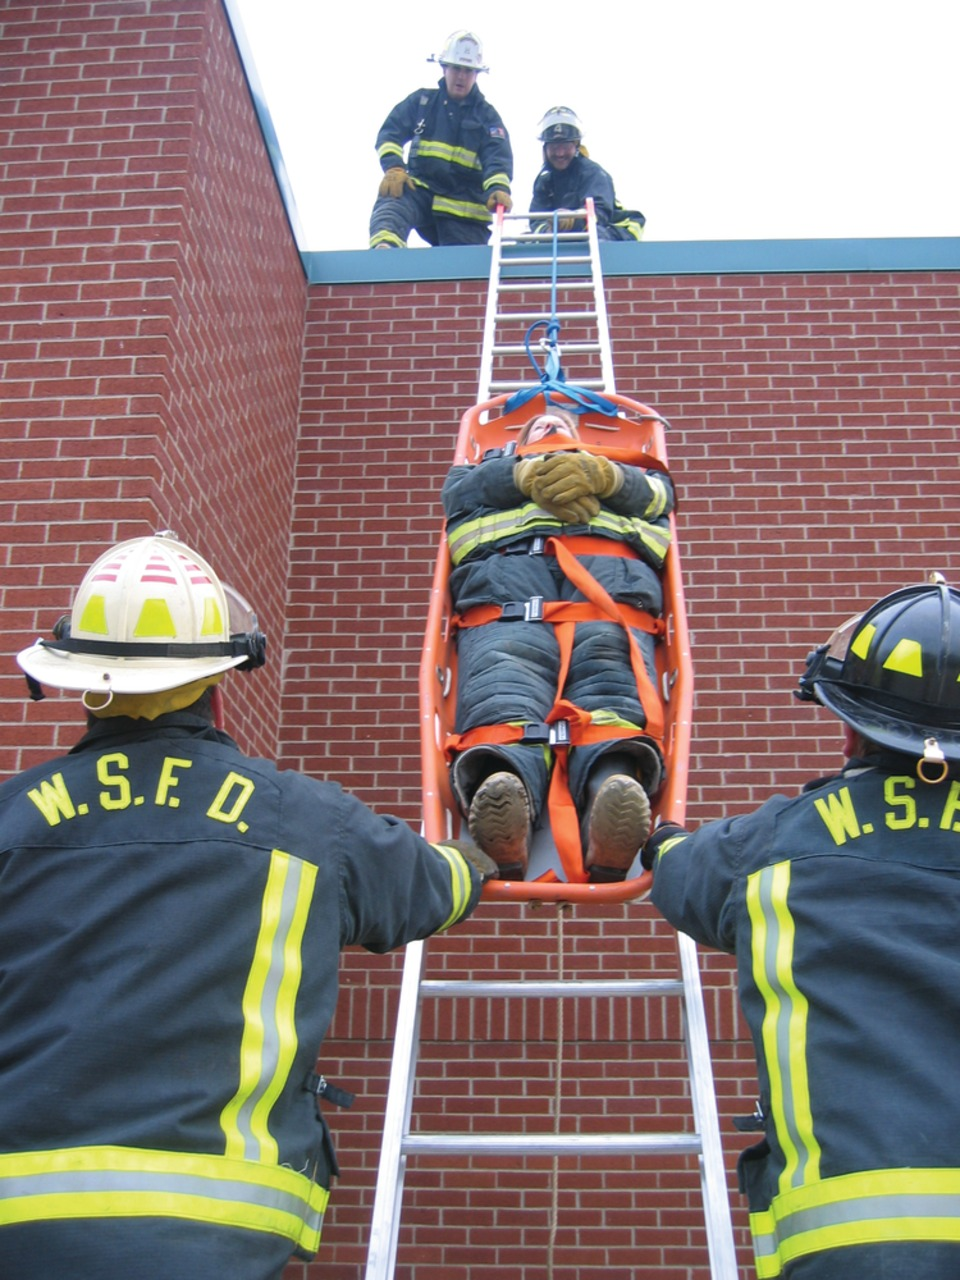 Firefighter Rescue Techniques To Remove Maydays Trapped